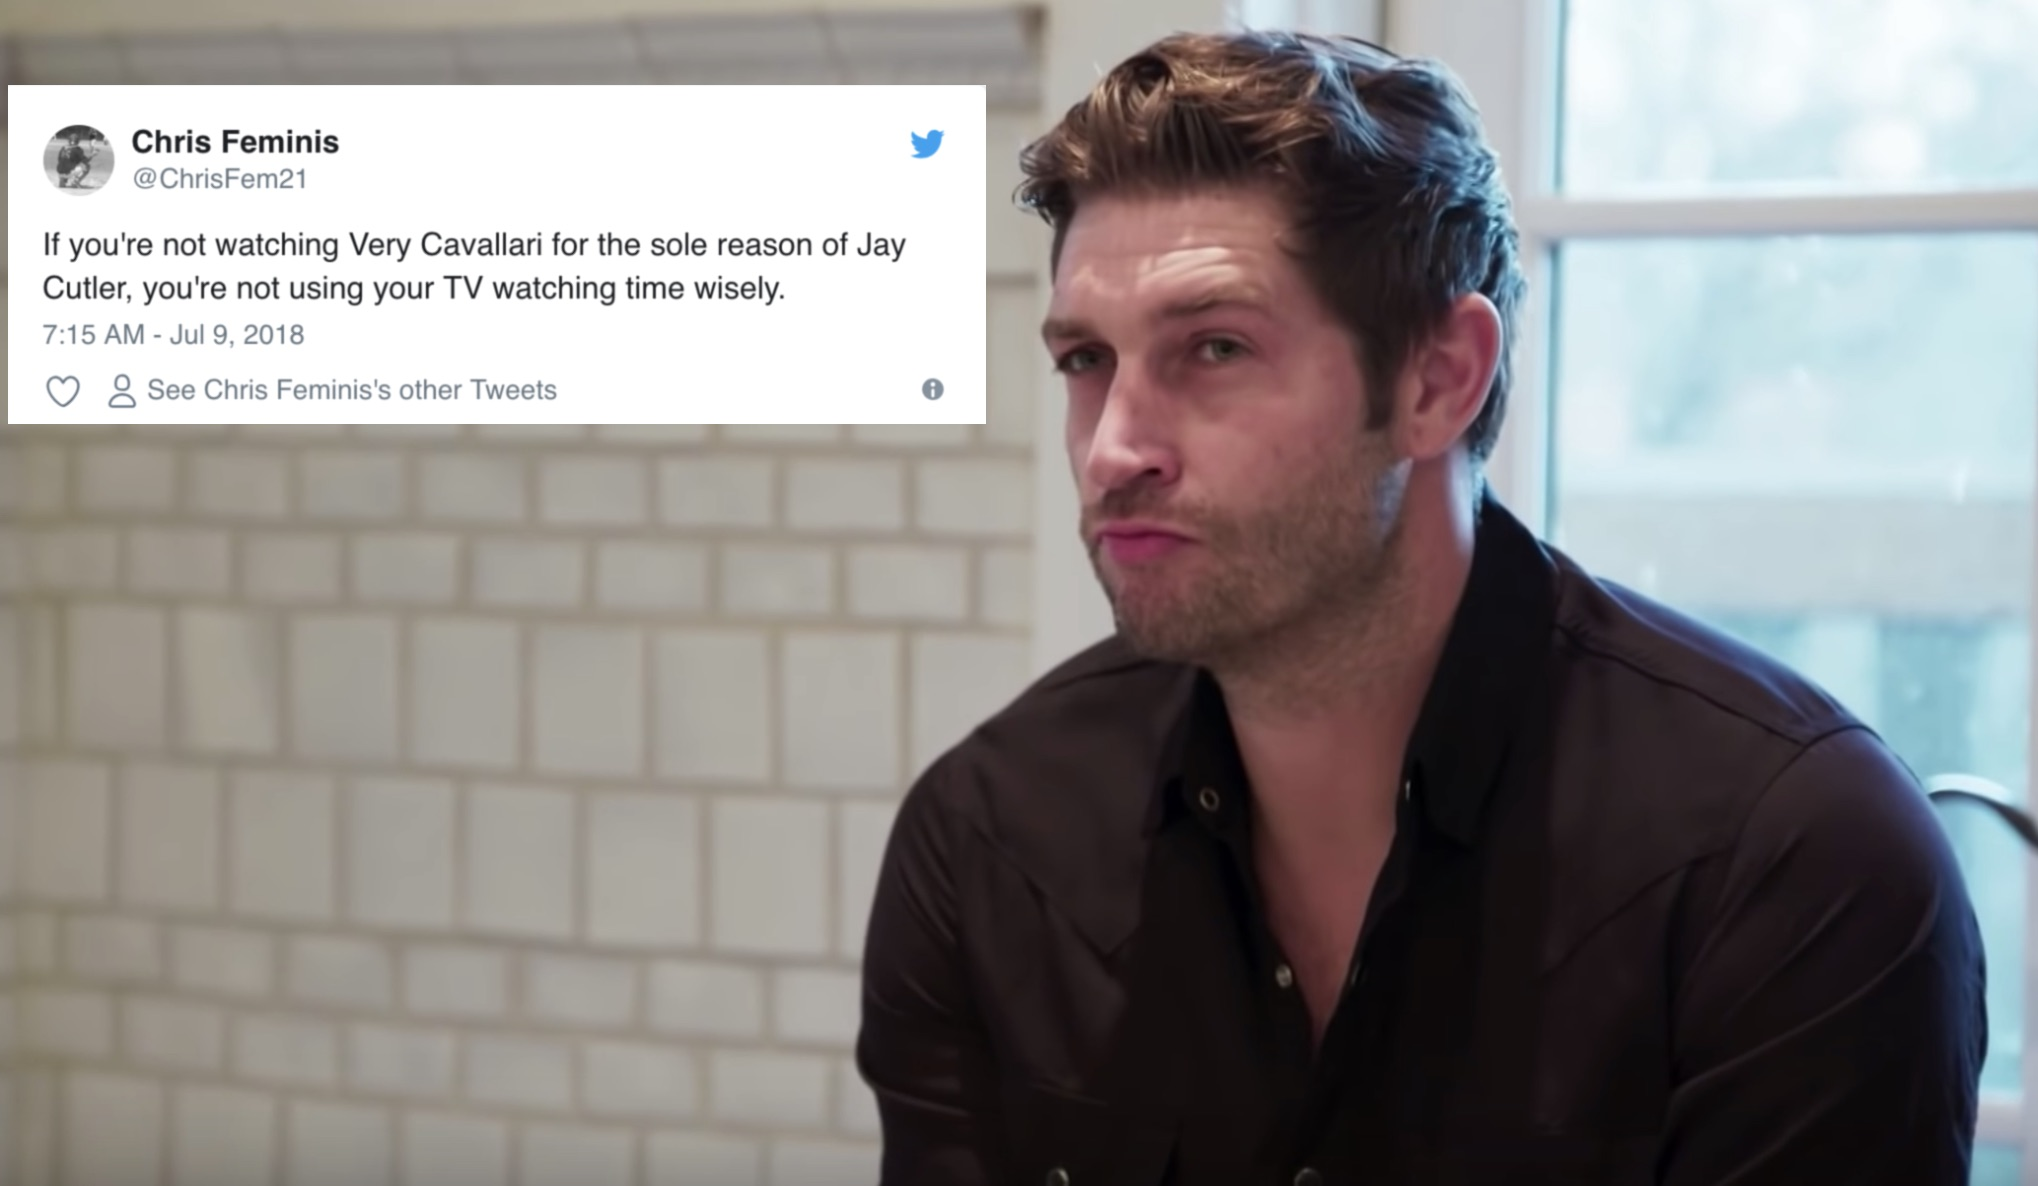 Twitter is officially obsessed with Jay Cutler after the <em>Very Cavallari</em> premiere